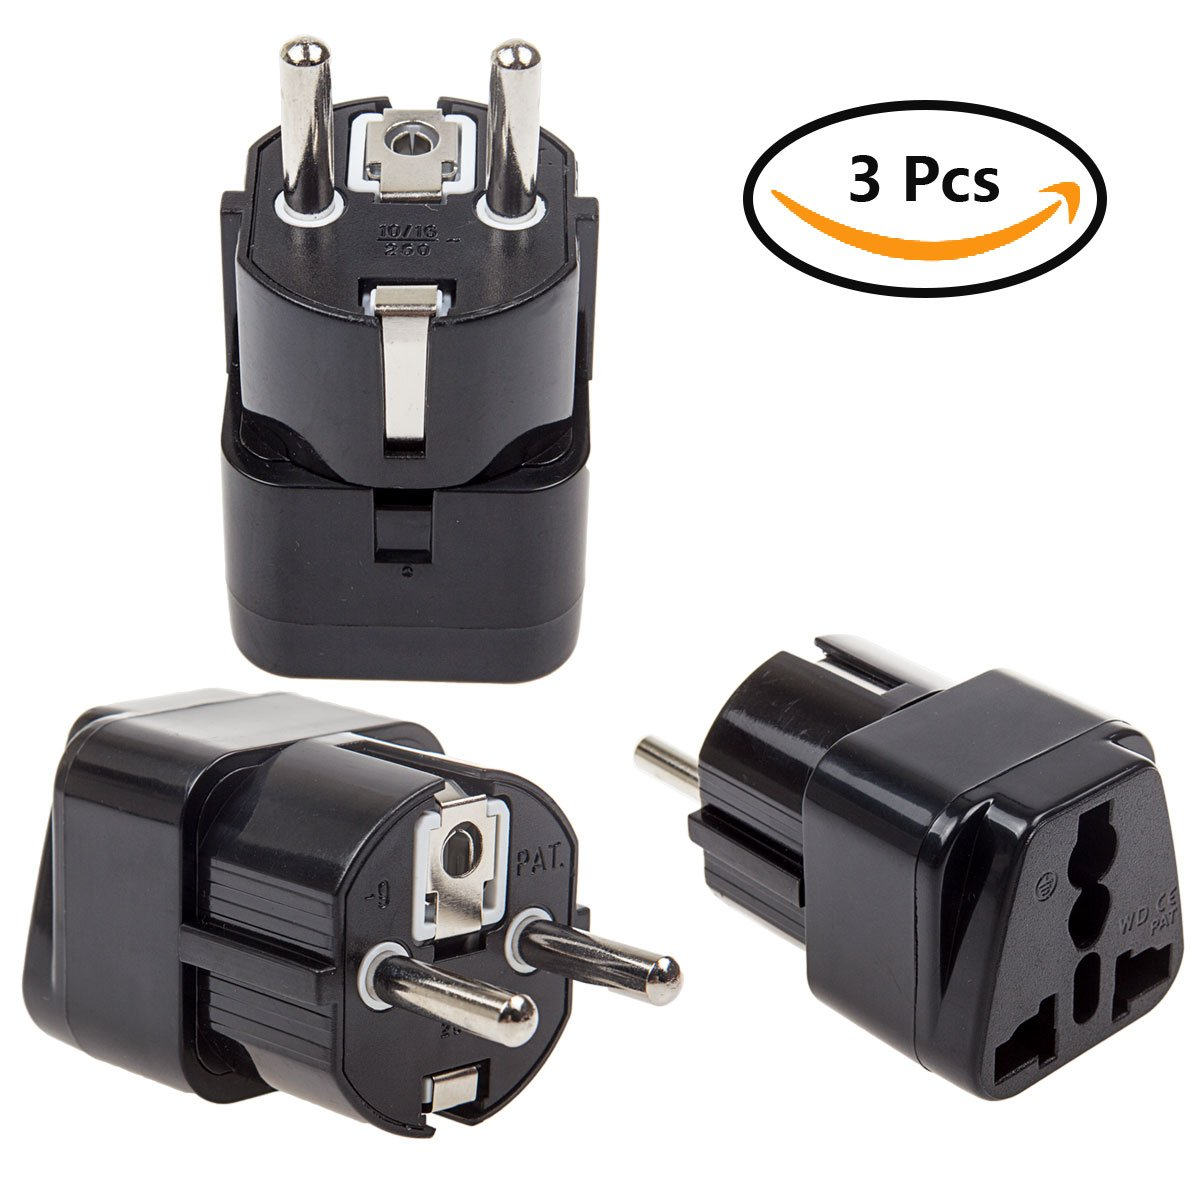 LANIAKEA US to EU / UK / Italy / Germany / France Plug Adapter for Travel, 3Prong Plug Converter, Grounded Universal type, 4Pcs SilkRoad Direct